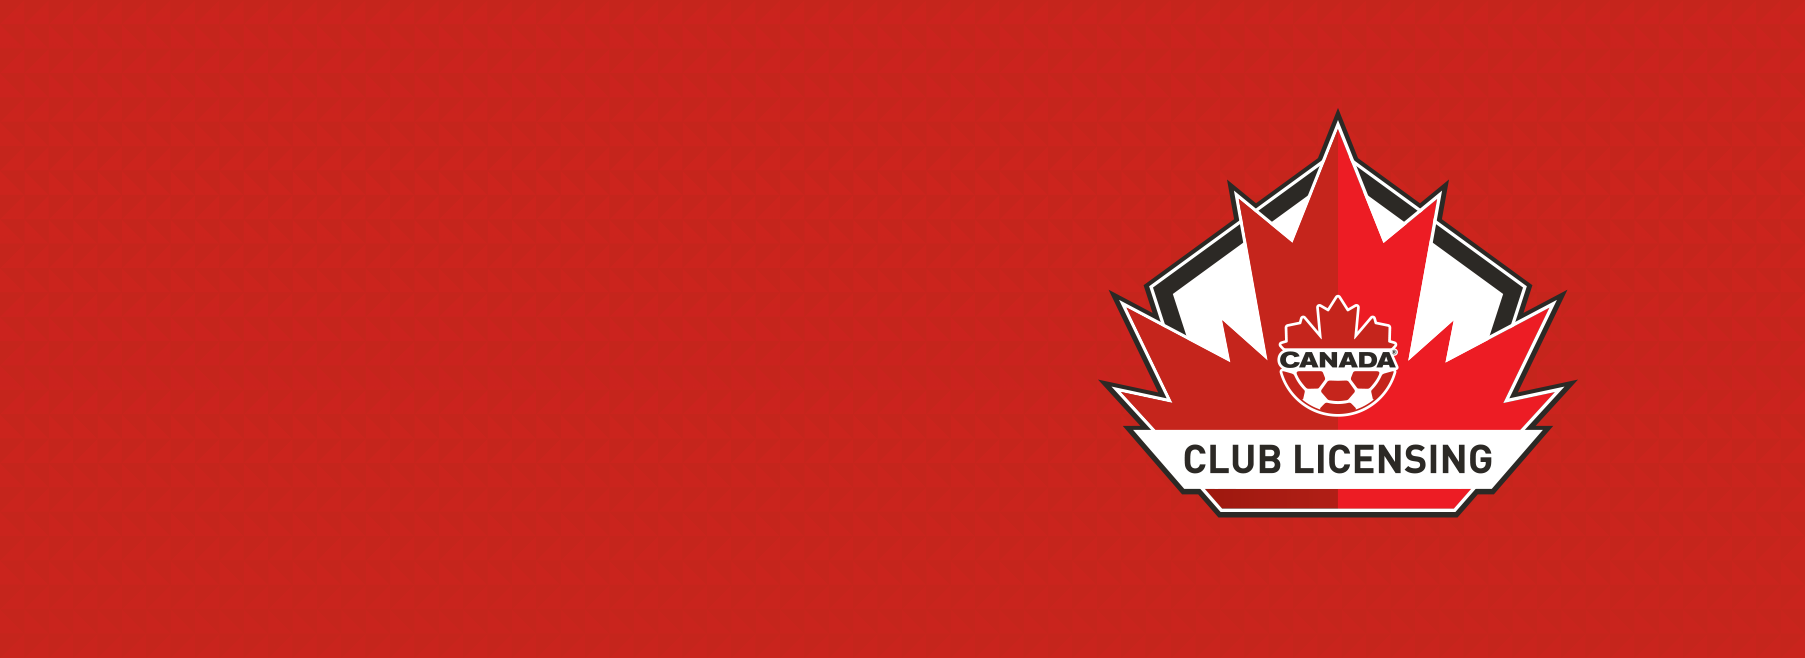 Club Licensing Header